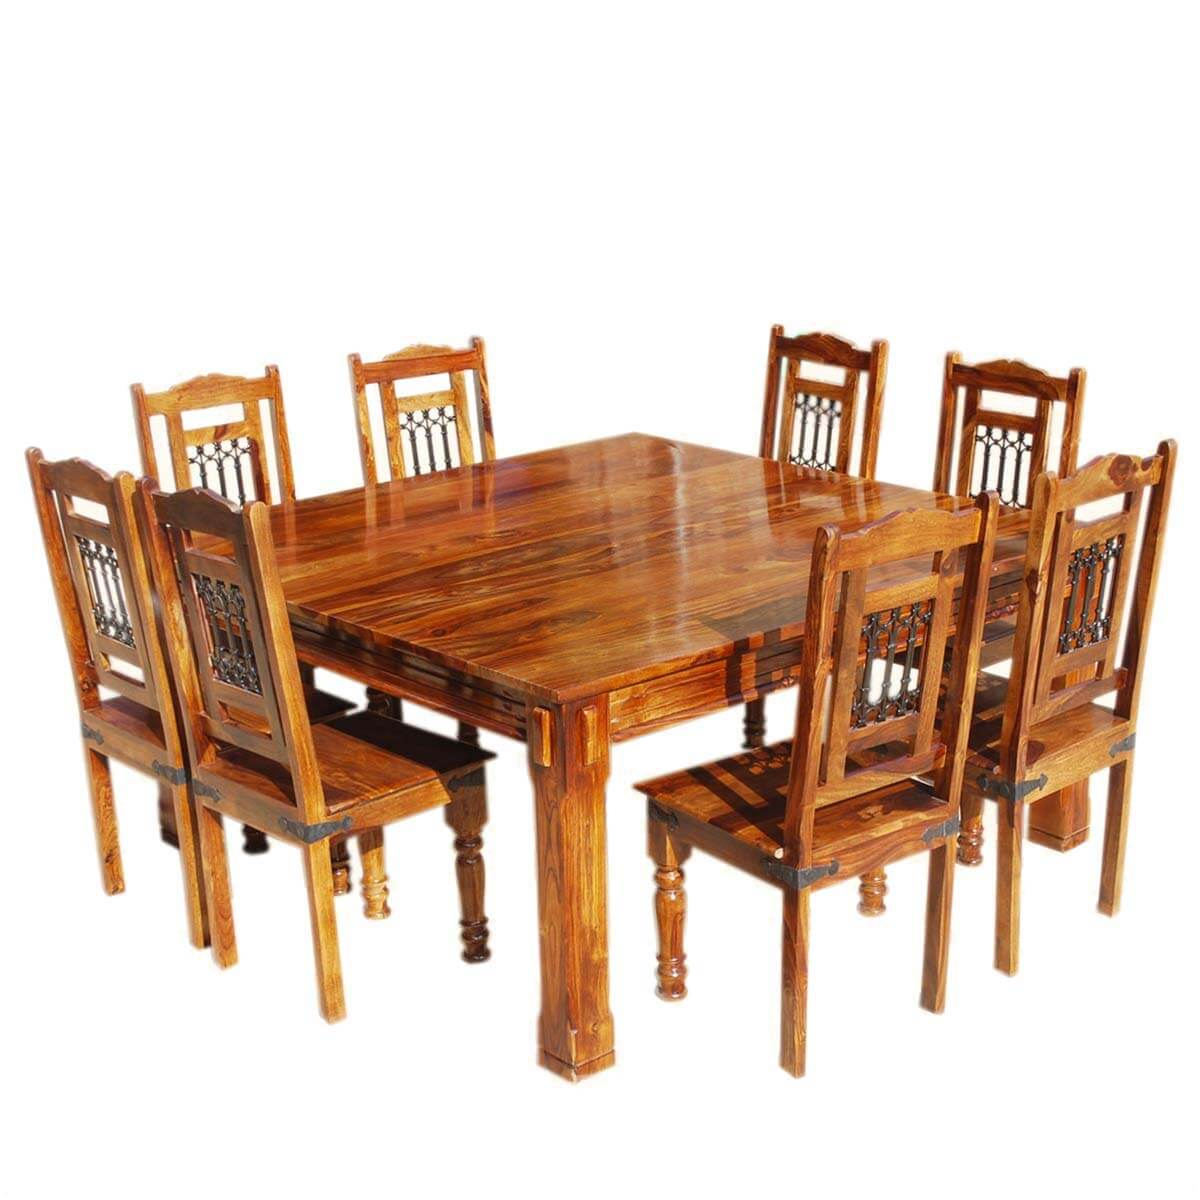 Solid wood rustic square dining table chairs set for Wood dining table set